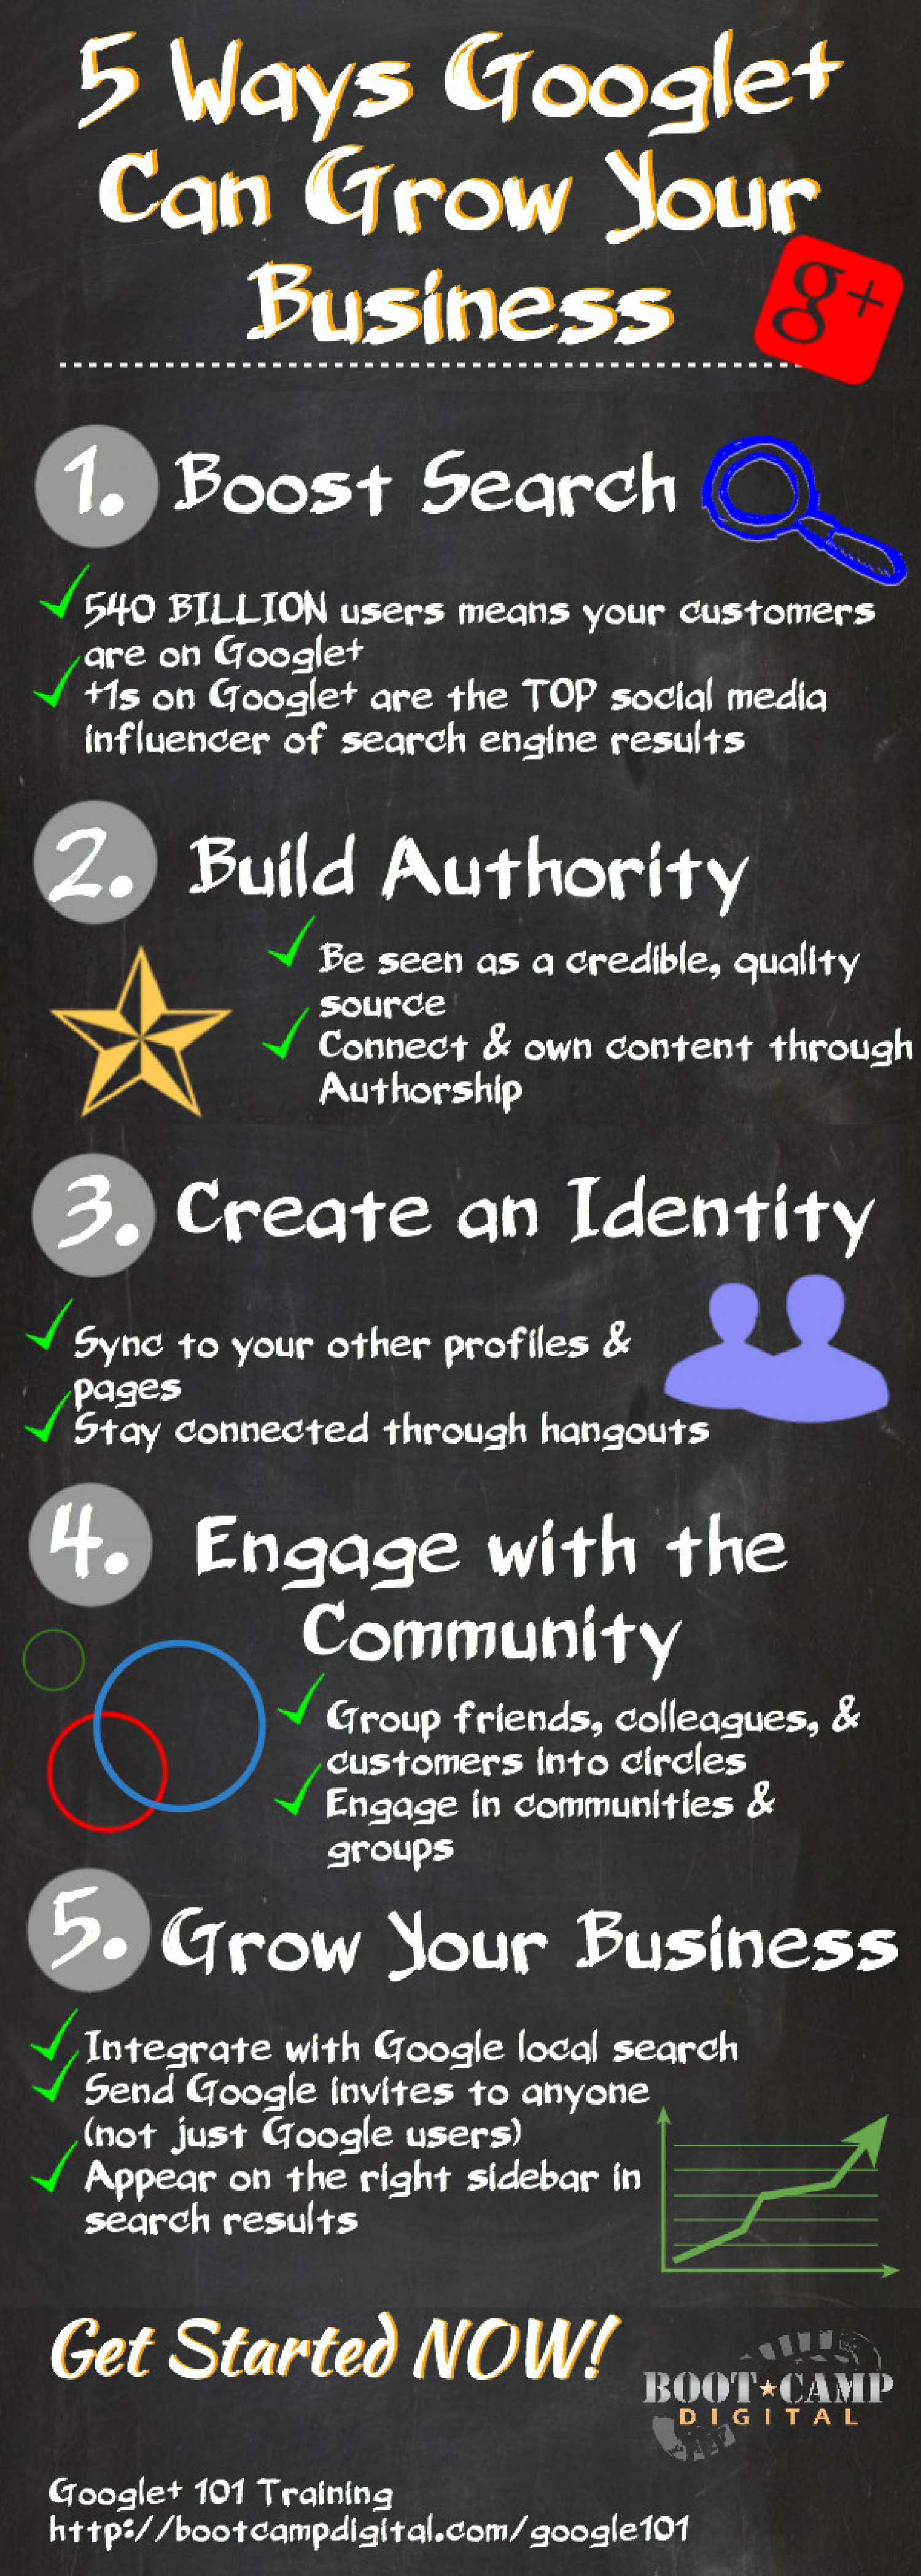 5 Ways Google+ Can Grow Your Business Infographic